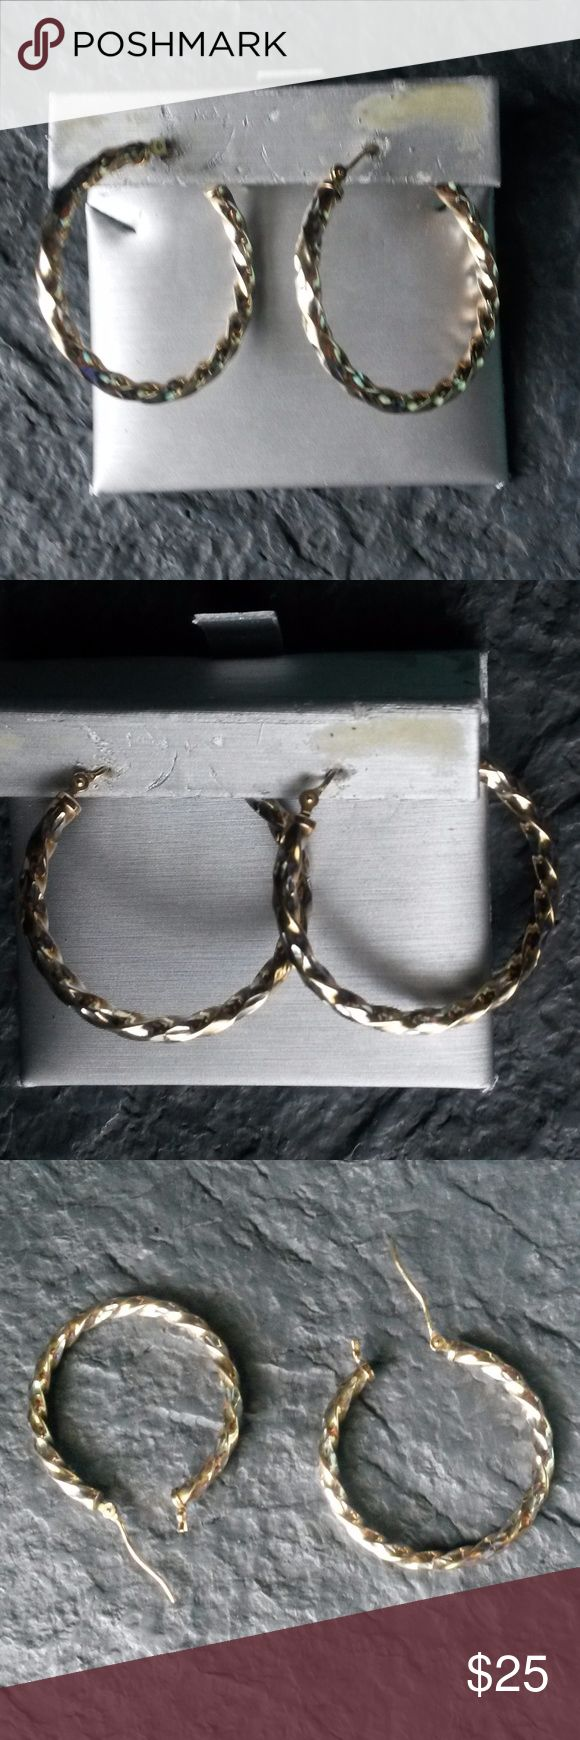 Silver And Gold Rope Earrings